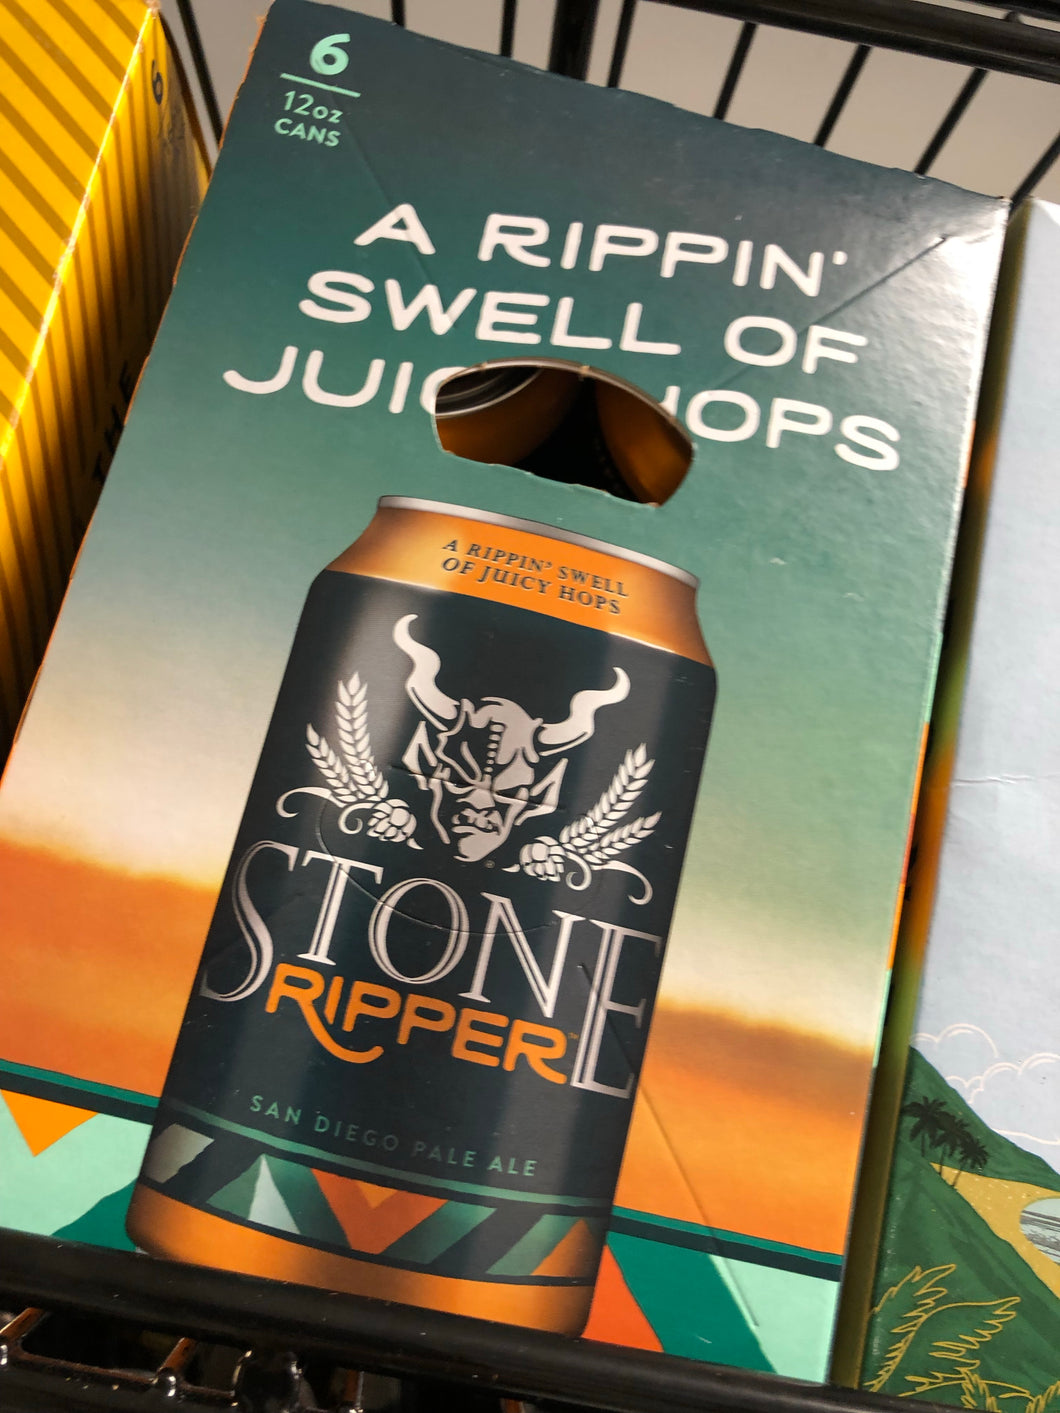 Stone The Ripper 12oz Cans 6 pk